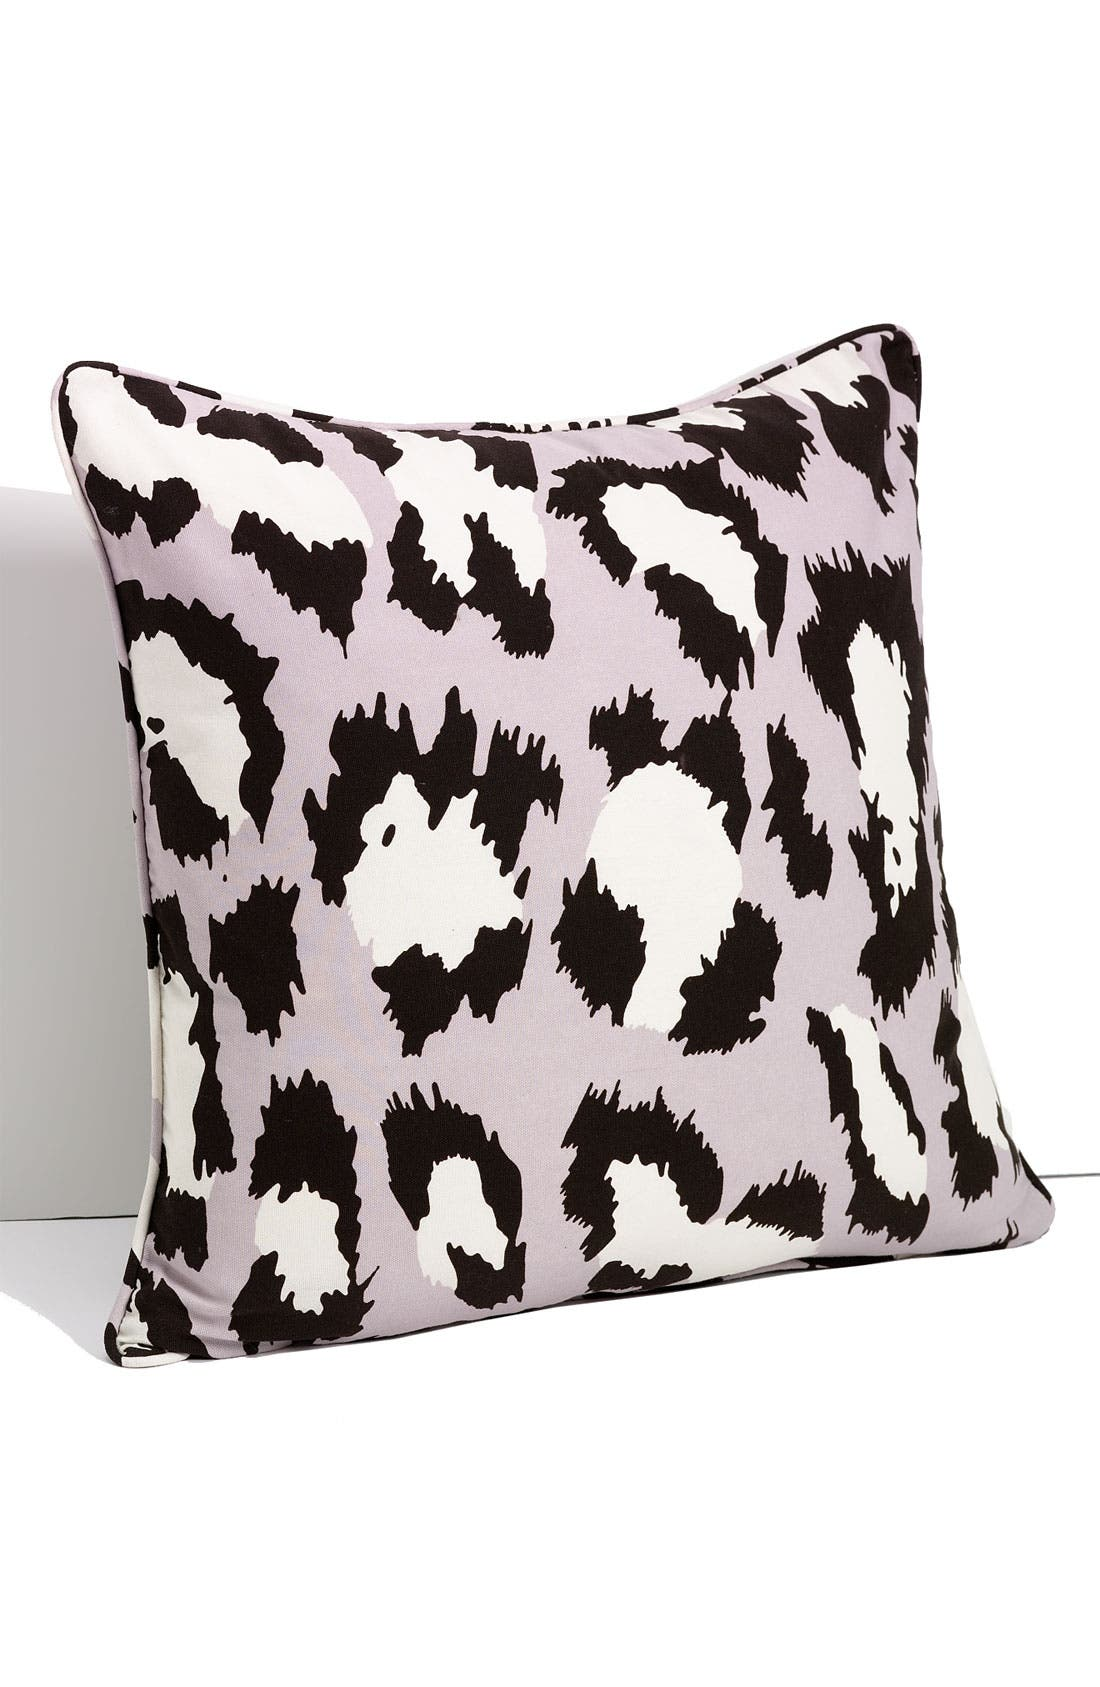 Alternate Image 1 Selected - Diane von Furstenberg 'Spotted Cat' Pillow